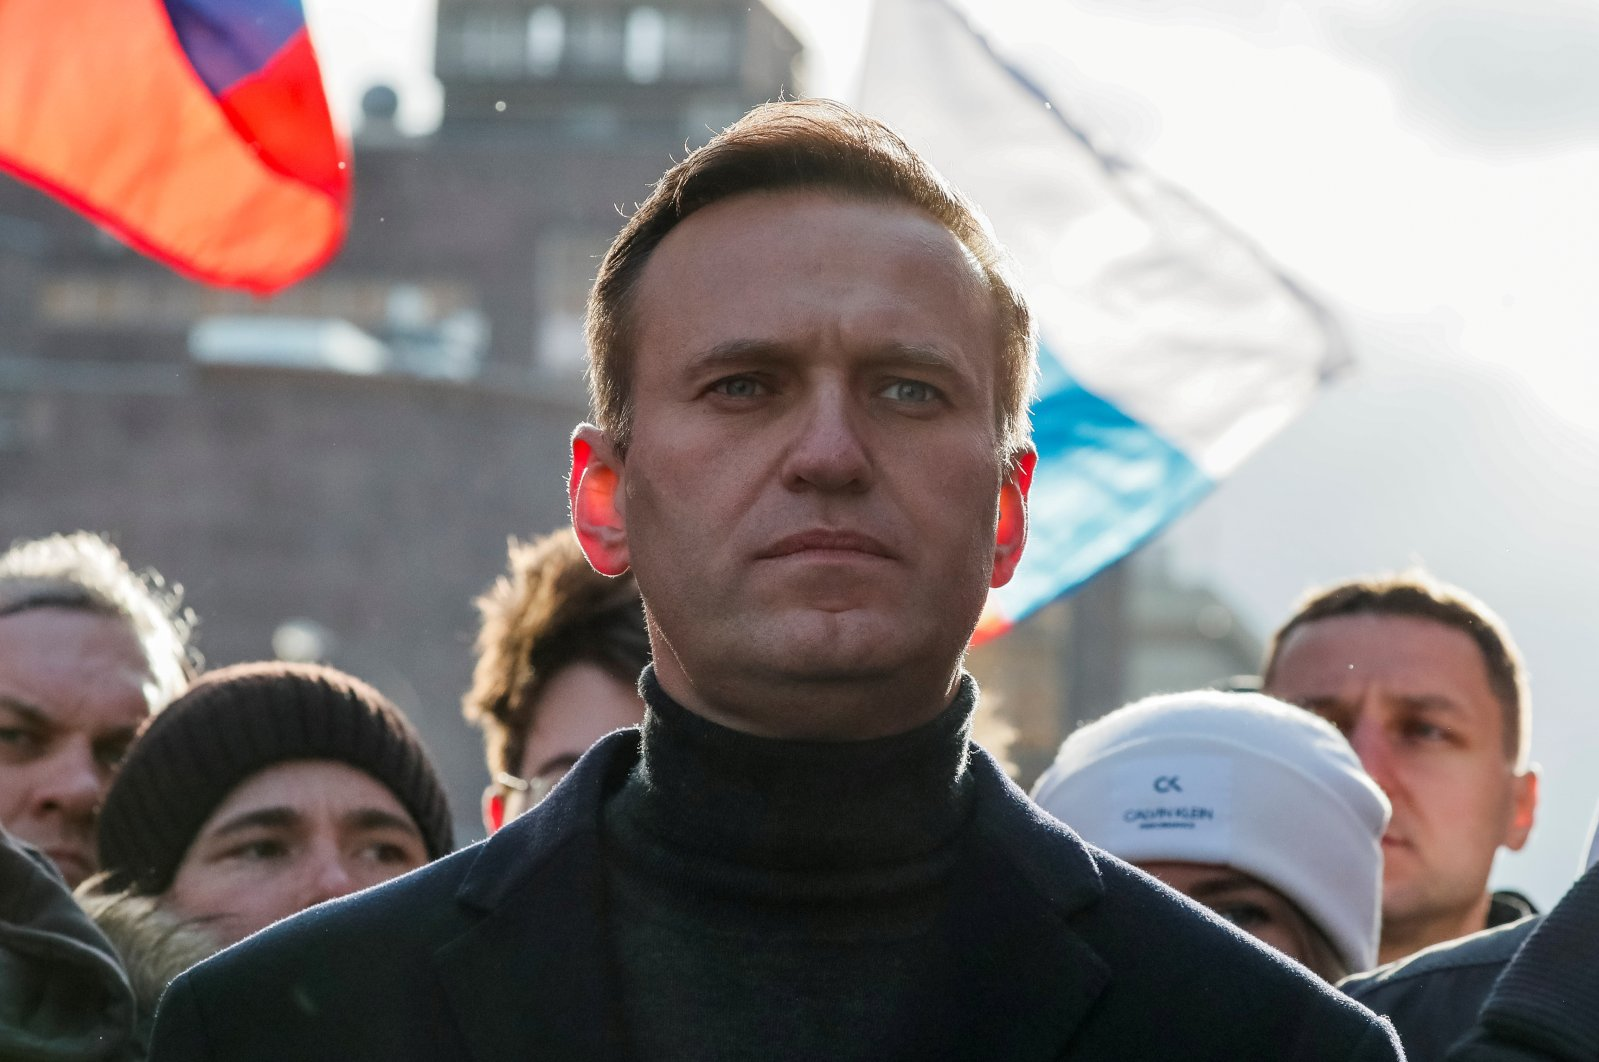 Russian opposition politician Alexei Navalny takes part in a rally in Moscow, Russia, Feb. 29, 2020. (Reuters Photo)